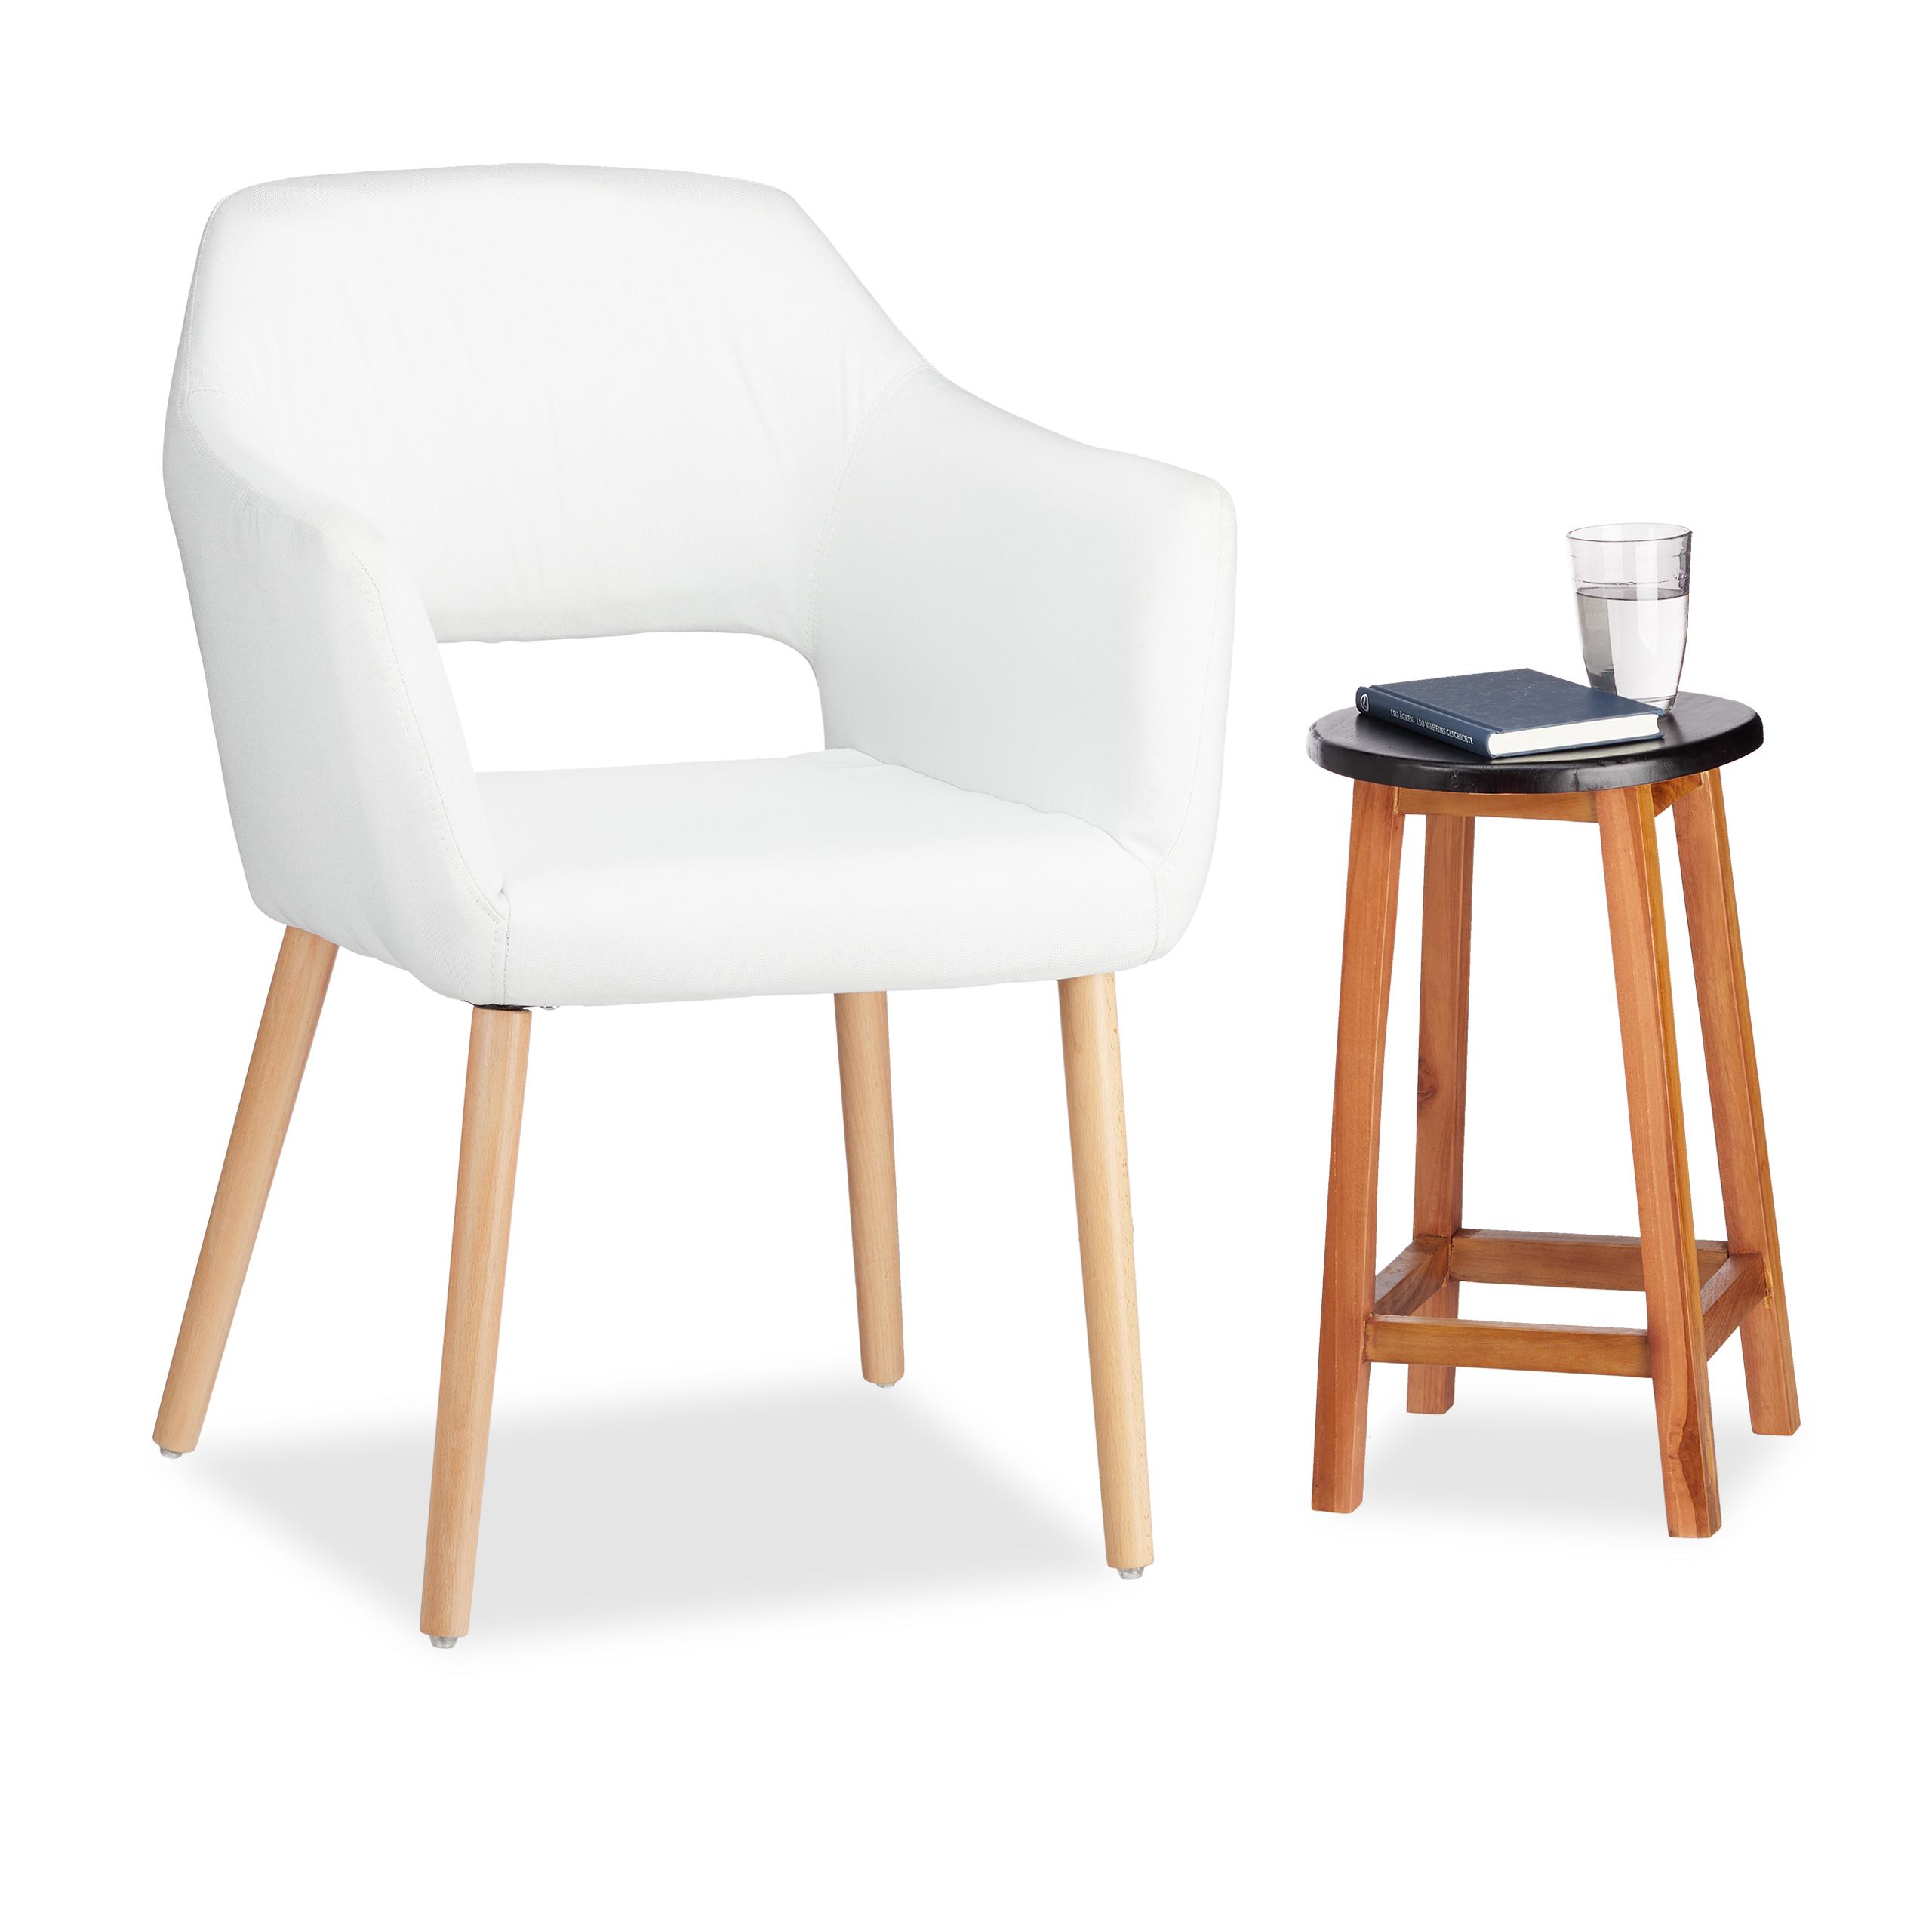 Polstersessel design sessel fernsehsessel clubsessel for Design fernsehsessel